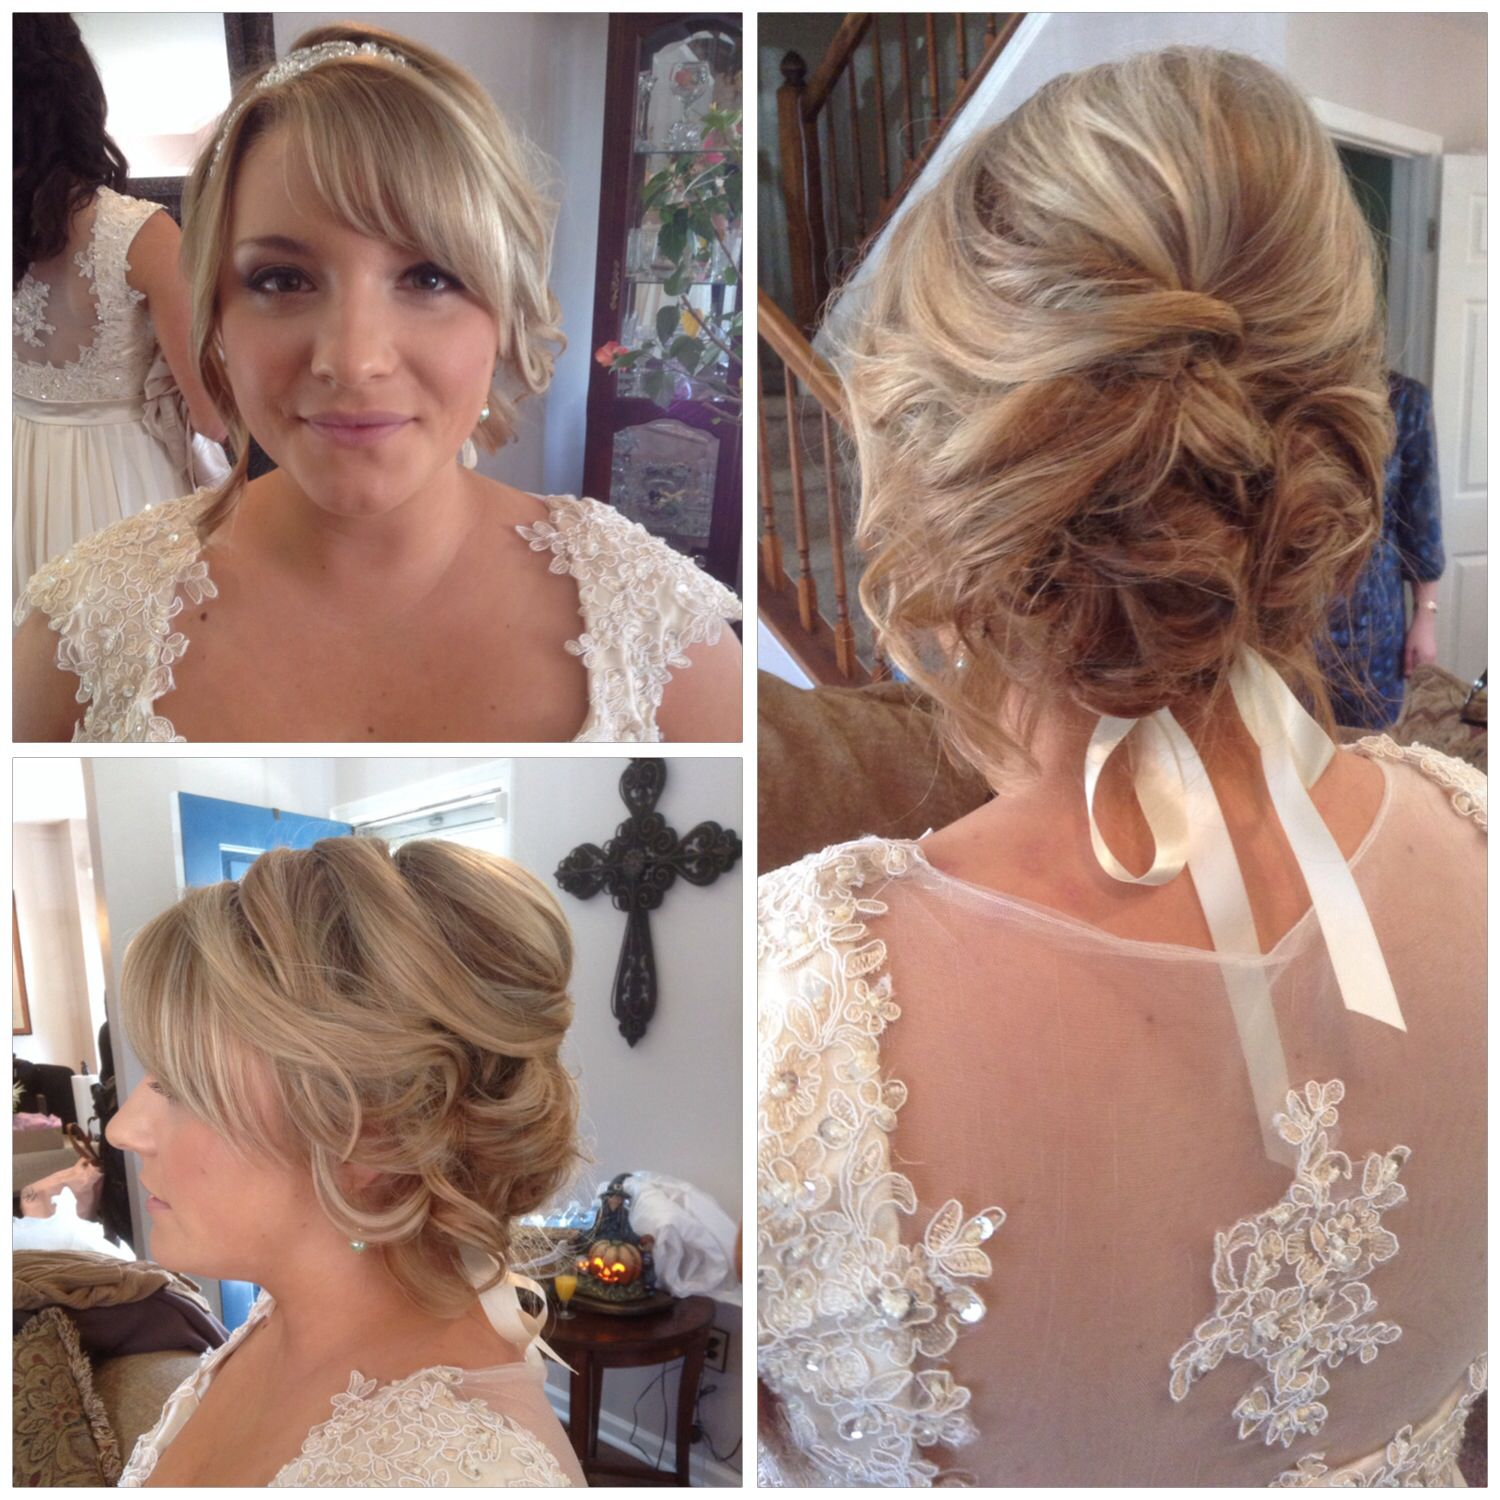 Bridal hair and makeup by nancy caroline bridal styling check out